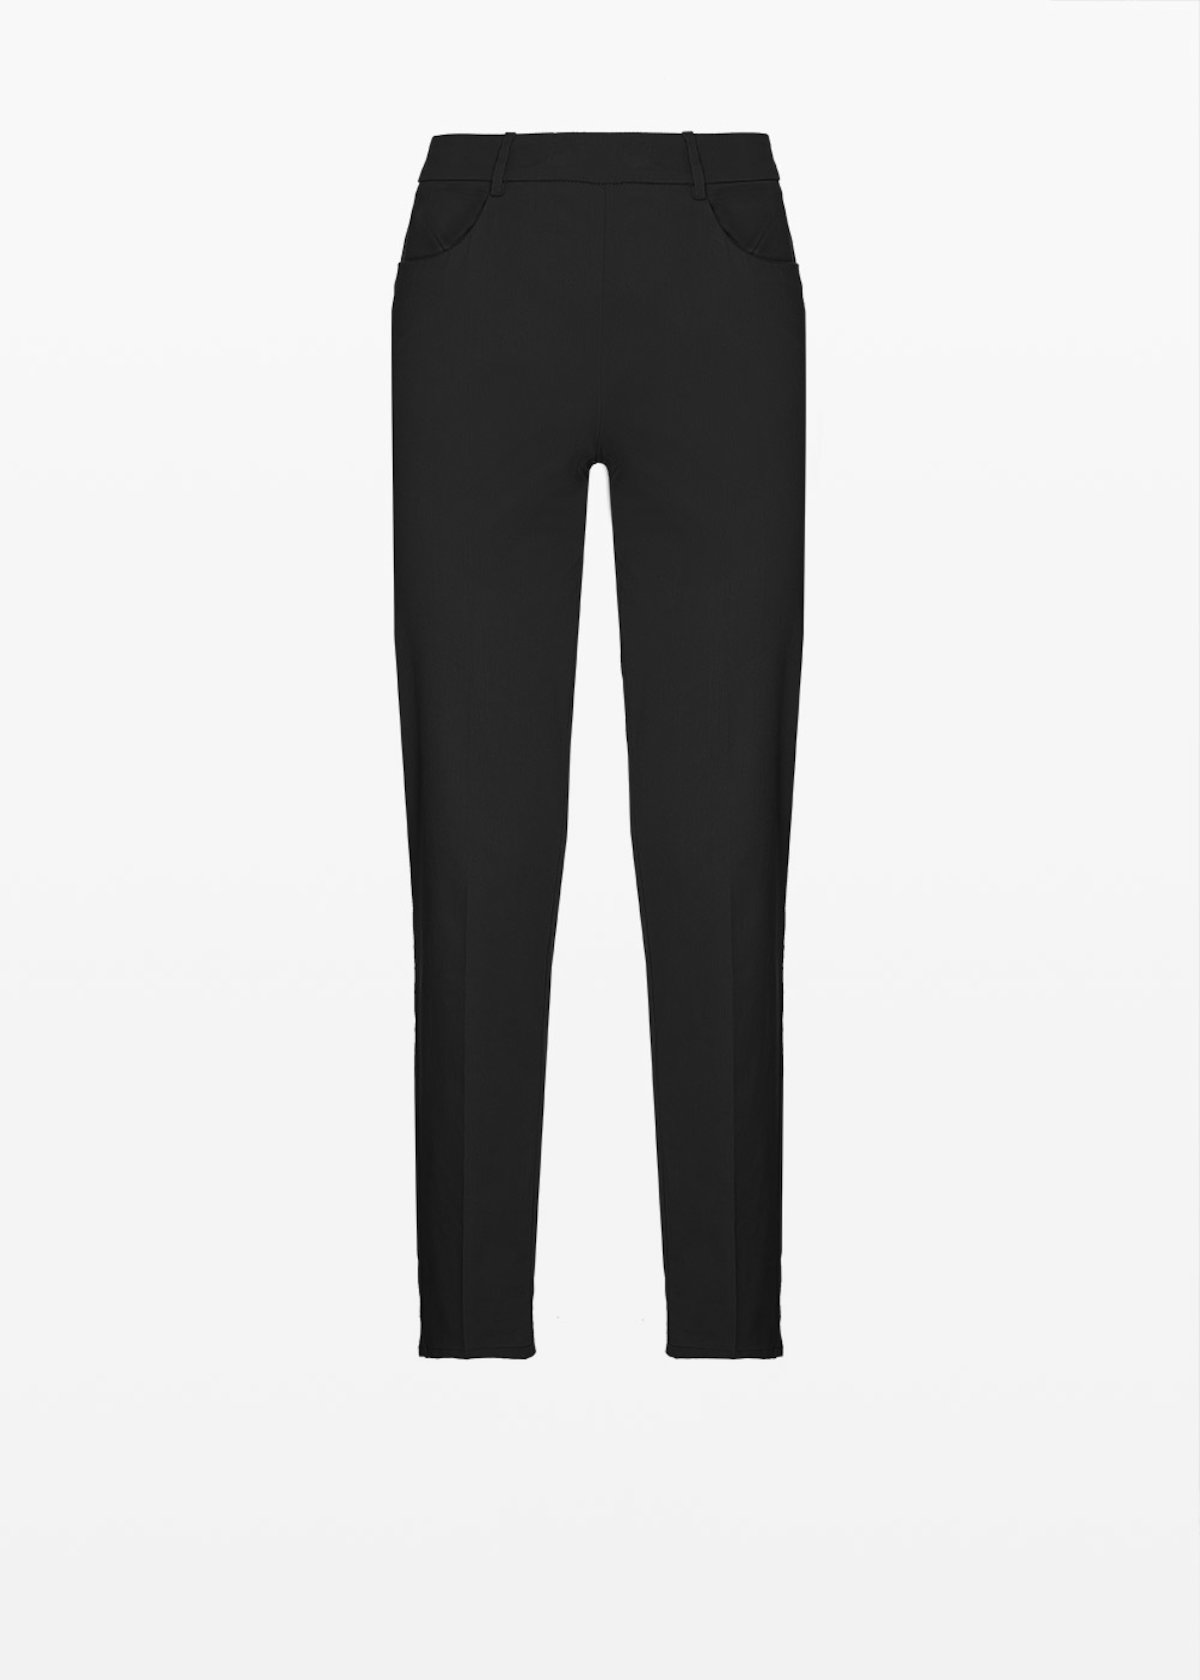 Scarlett C cotton trousers - Black - Woman - Category image